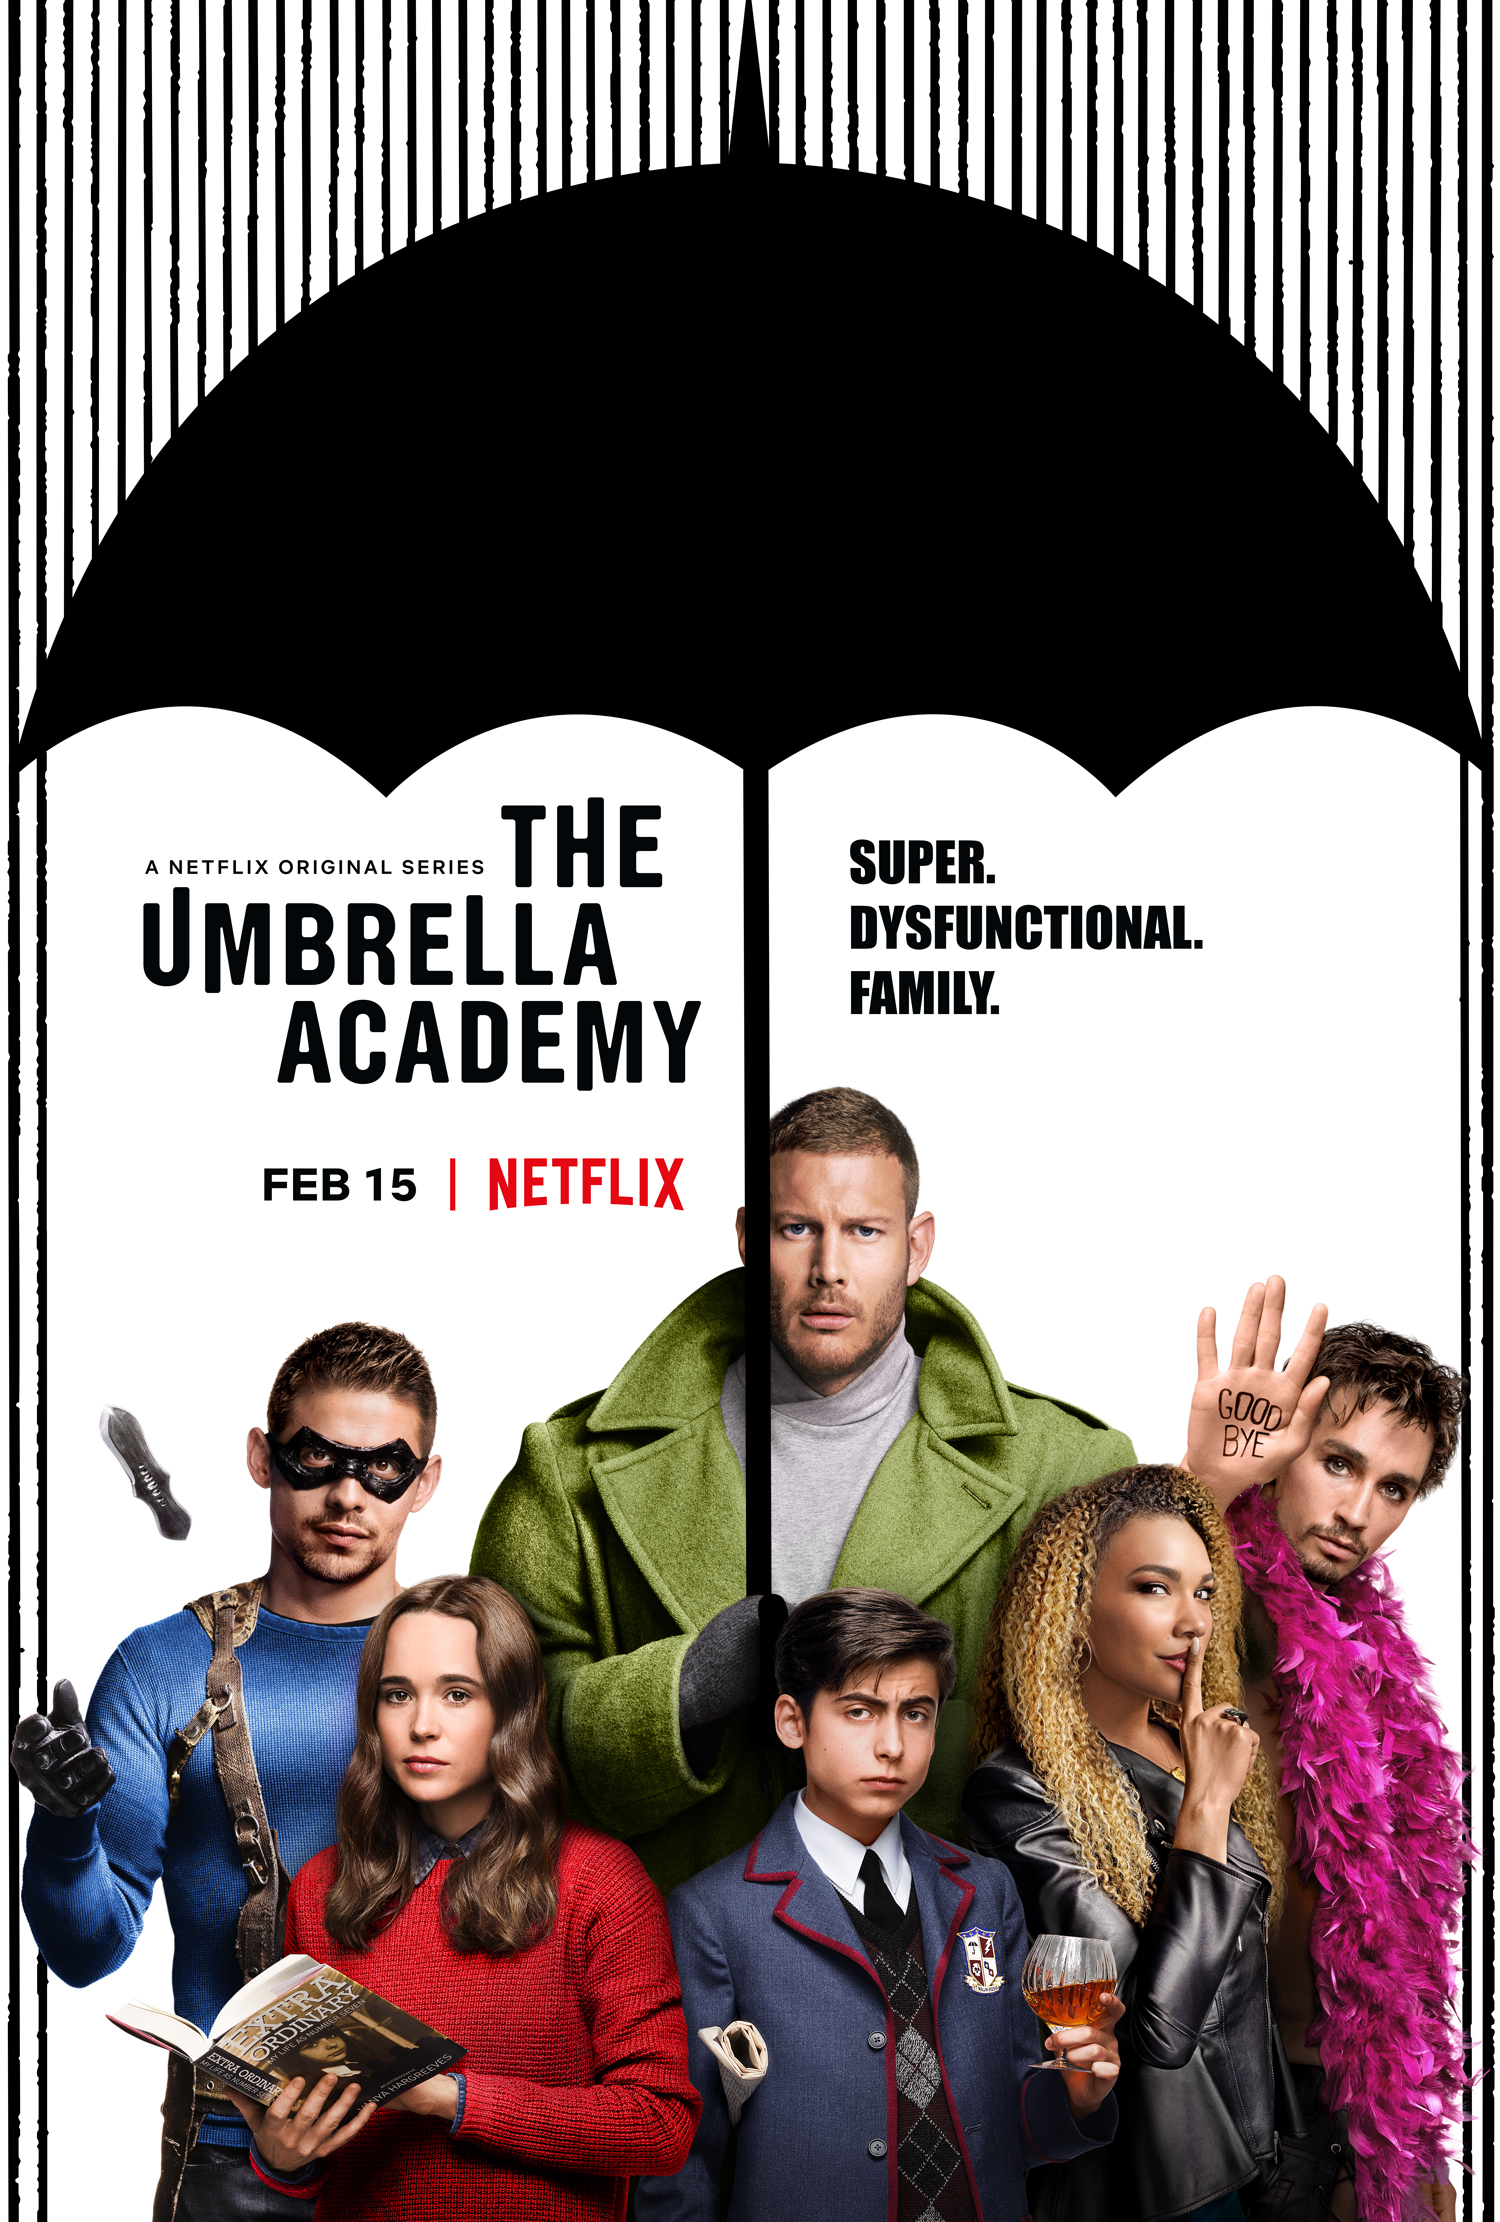 THE UMBRELLA ACADEMY (1 Sezonas)